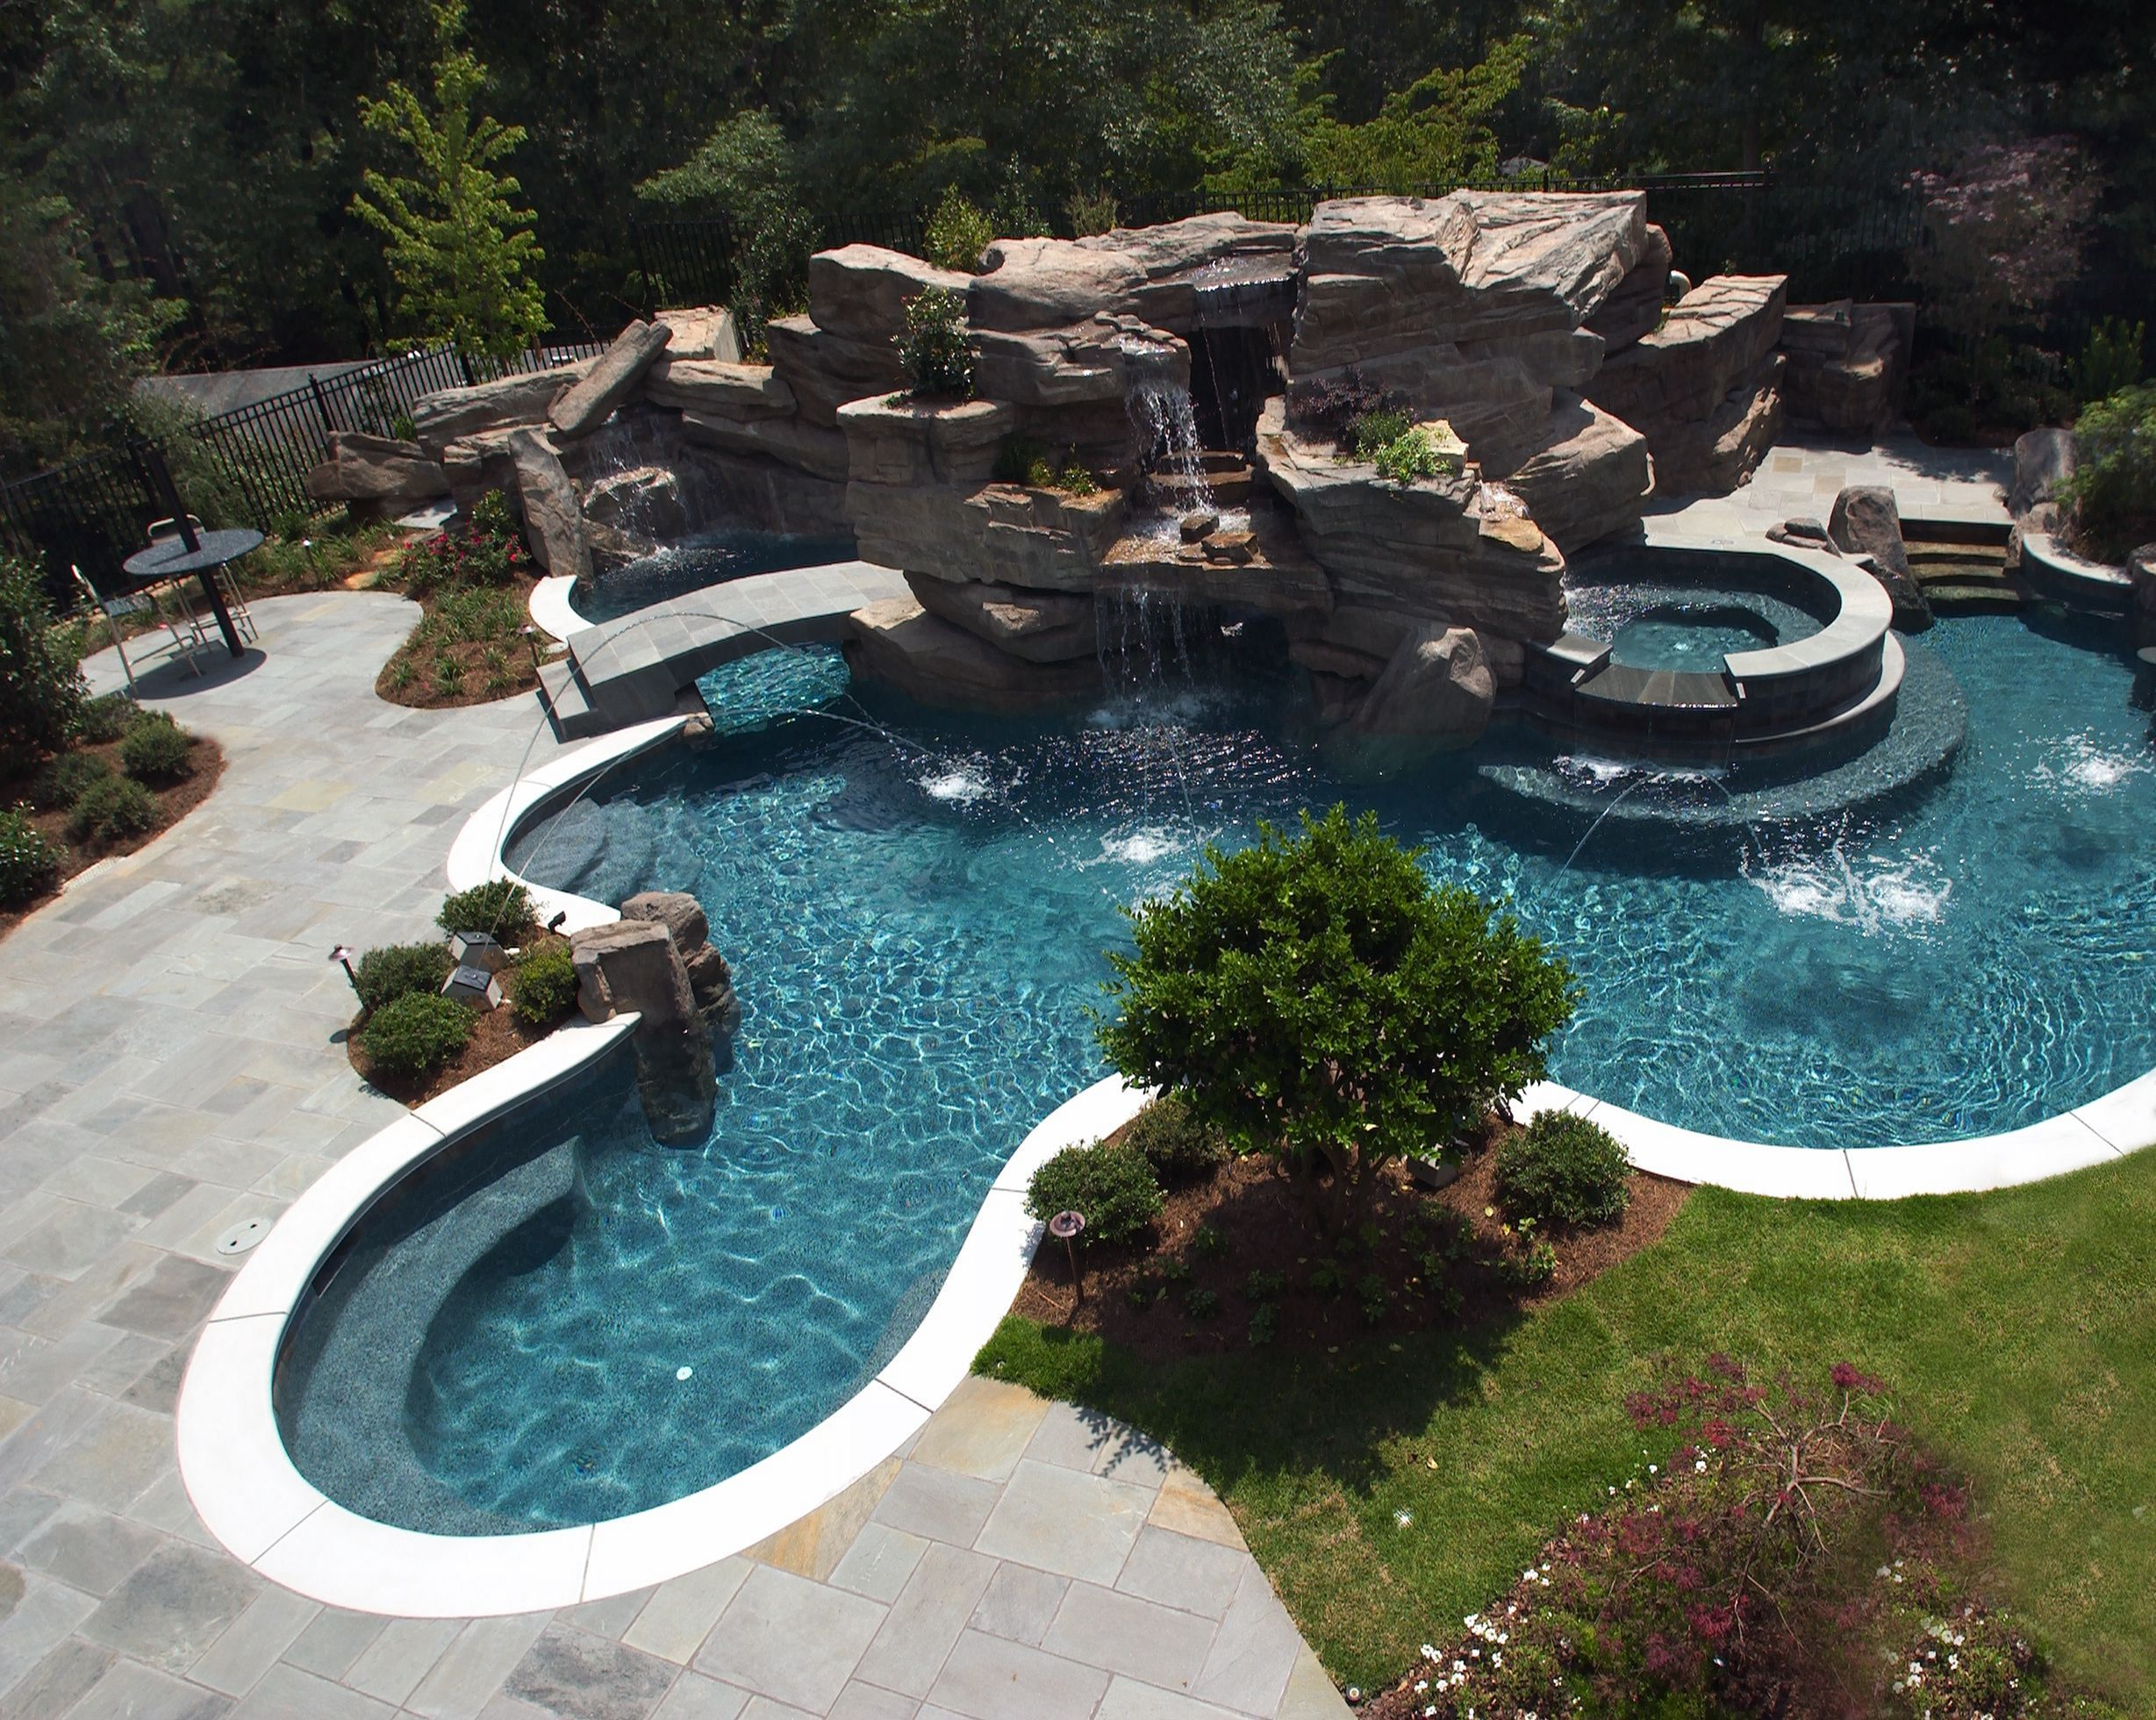 25 Incredible Swimming Pool Design Ideas With Waterfall For Your Backyard Backyard Pool Residential Pool Pool Waterfall